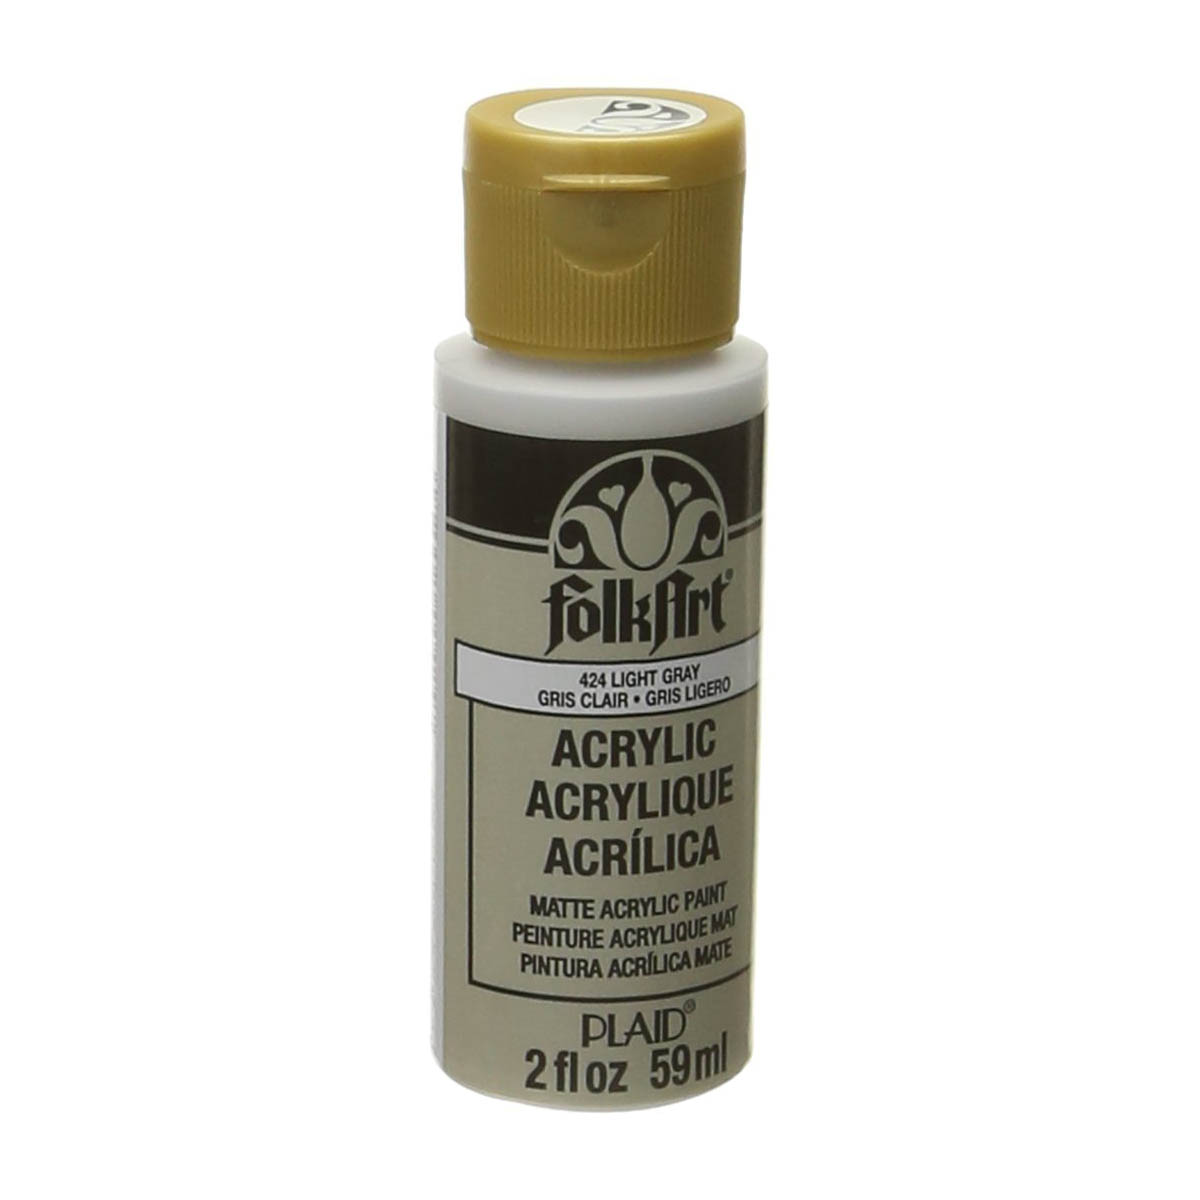 FolkArt ® Acrylic Colors - Light Gray, 2 oz. - 424